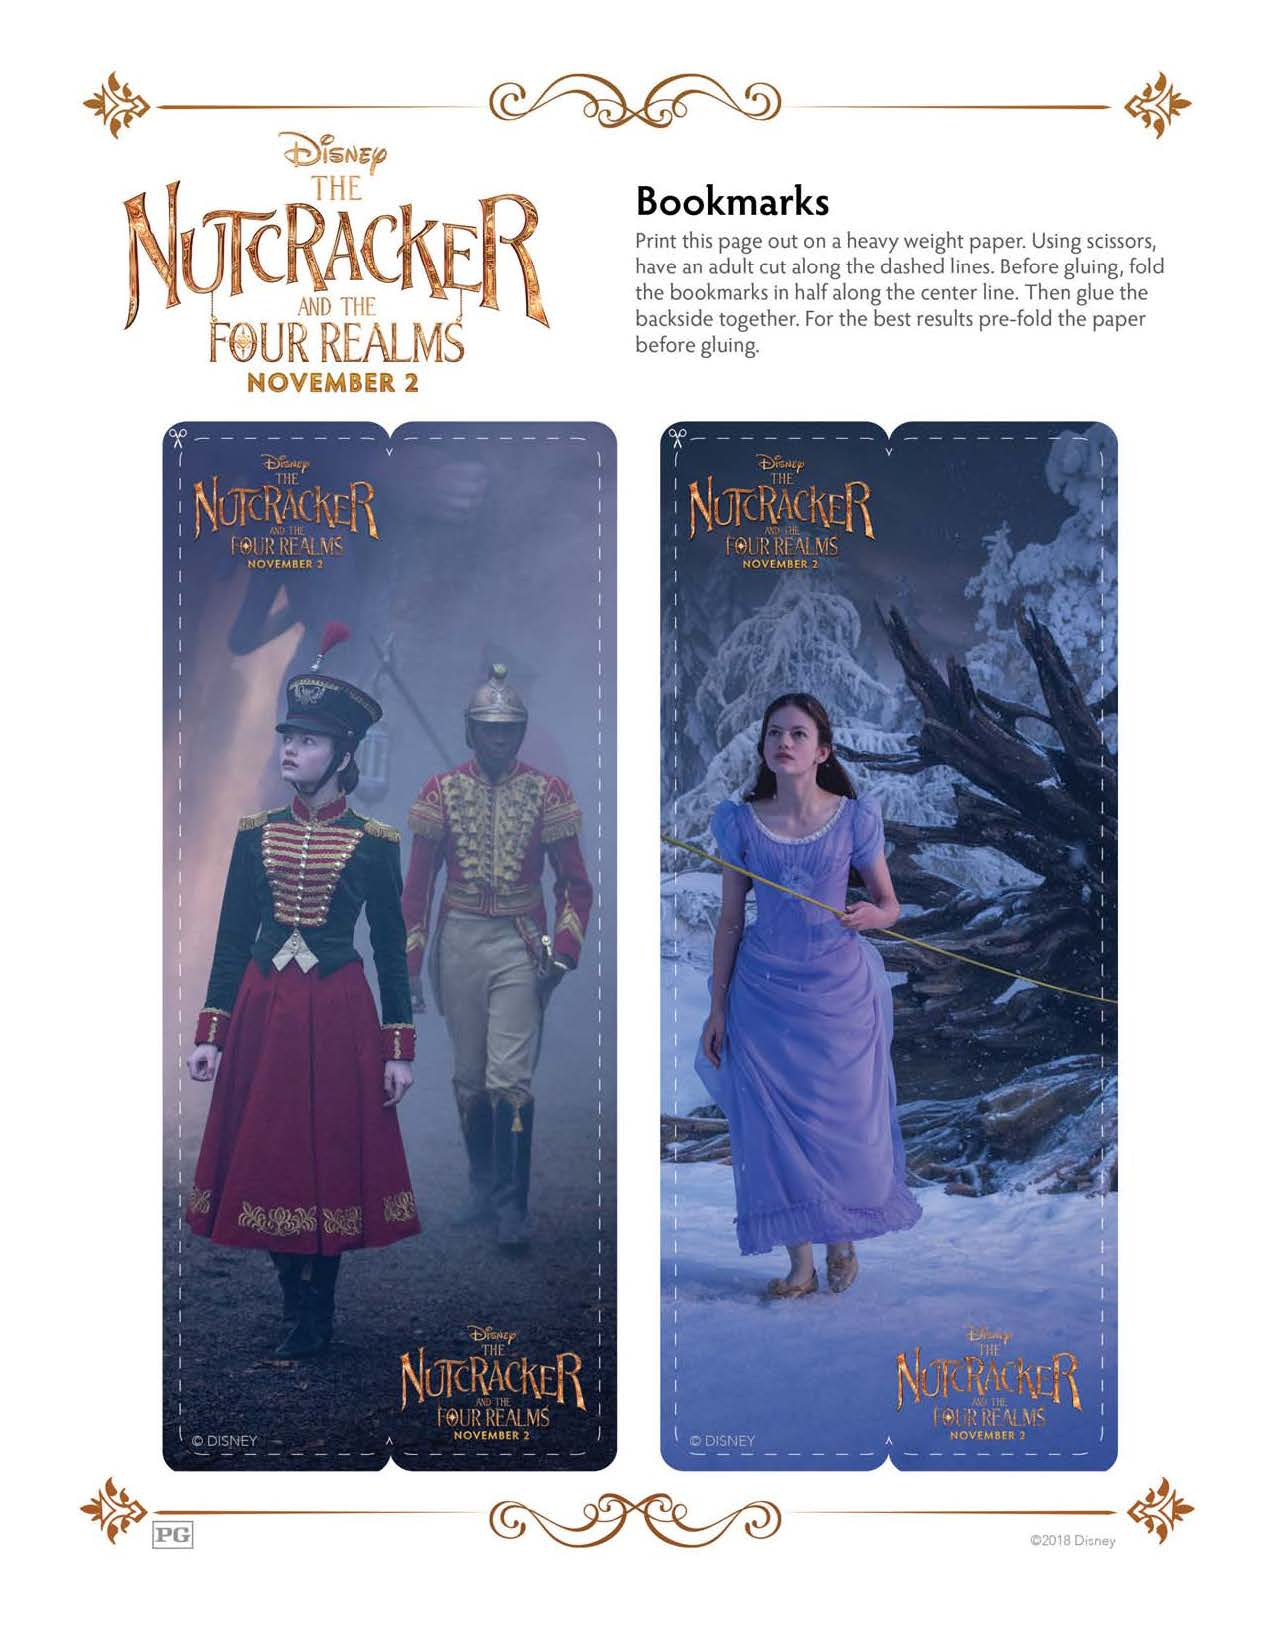 TheNutcrackerand the Four Realms activity pages